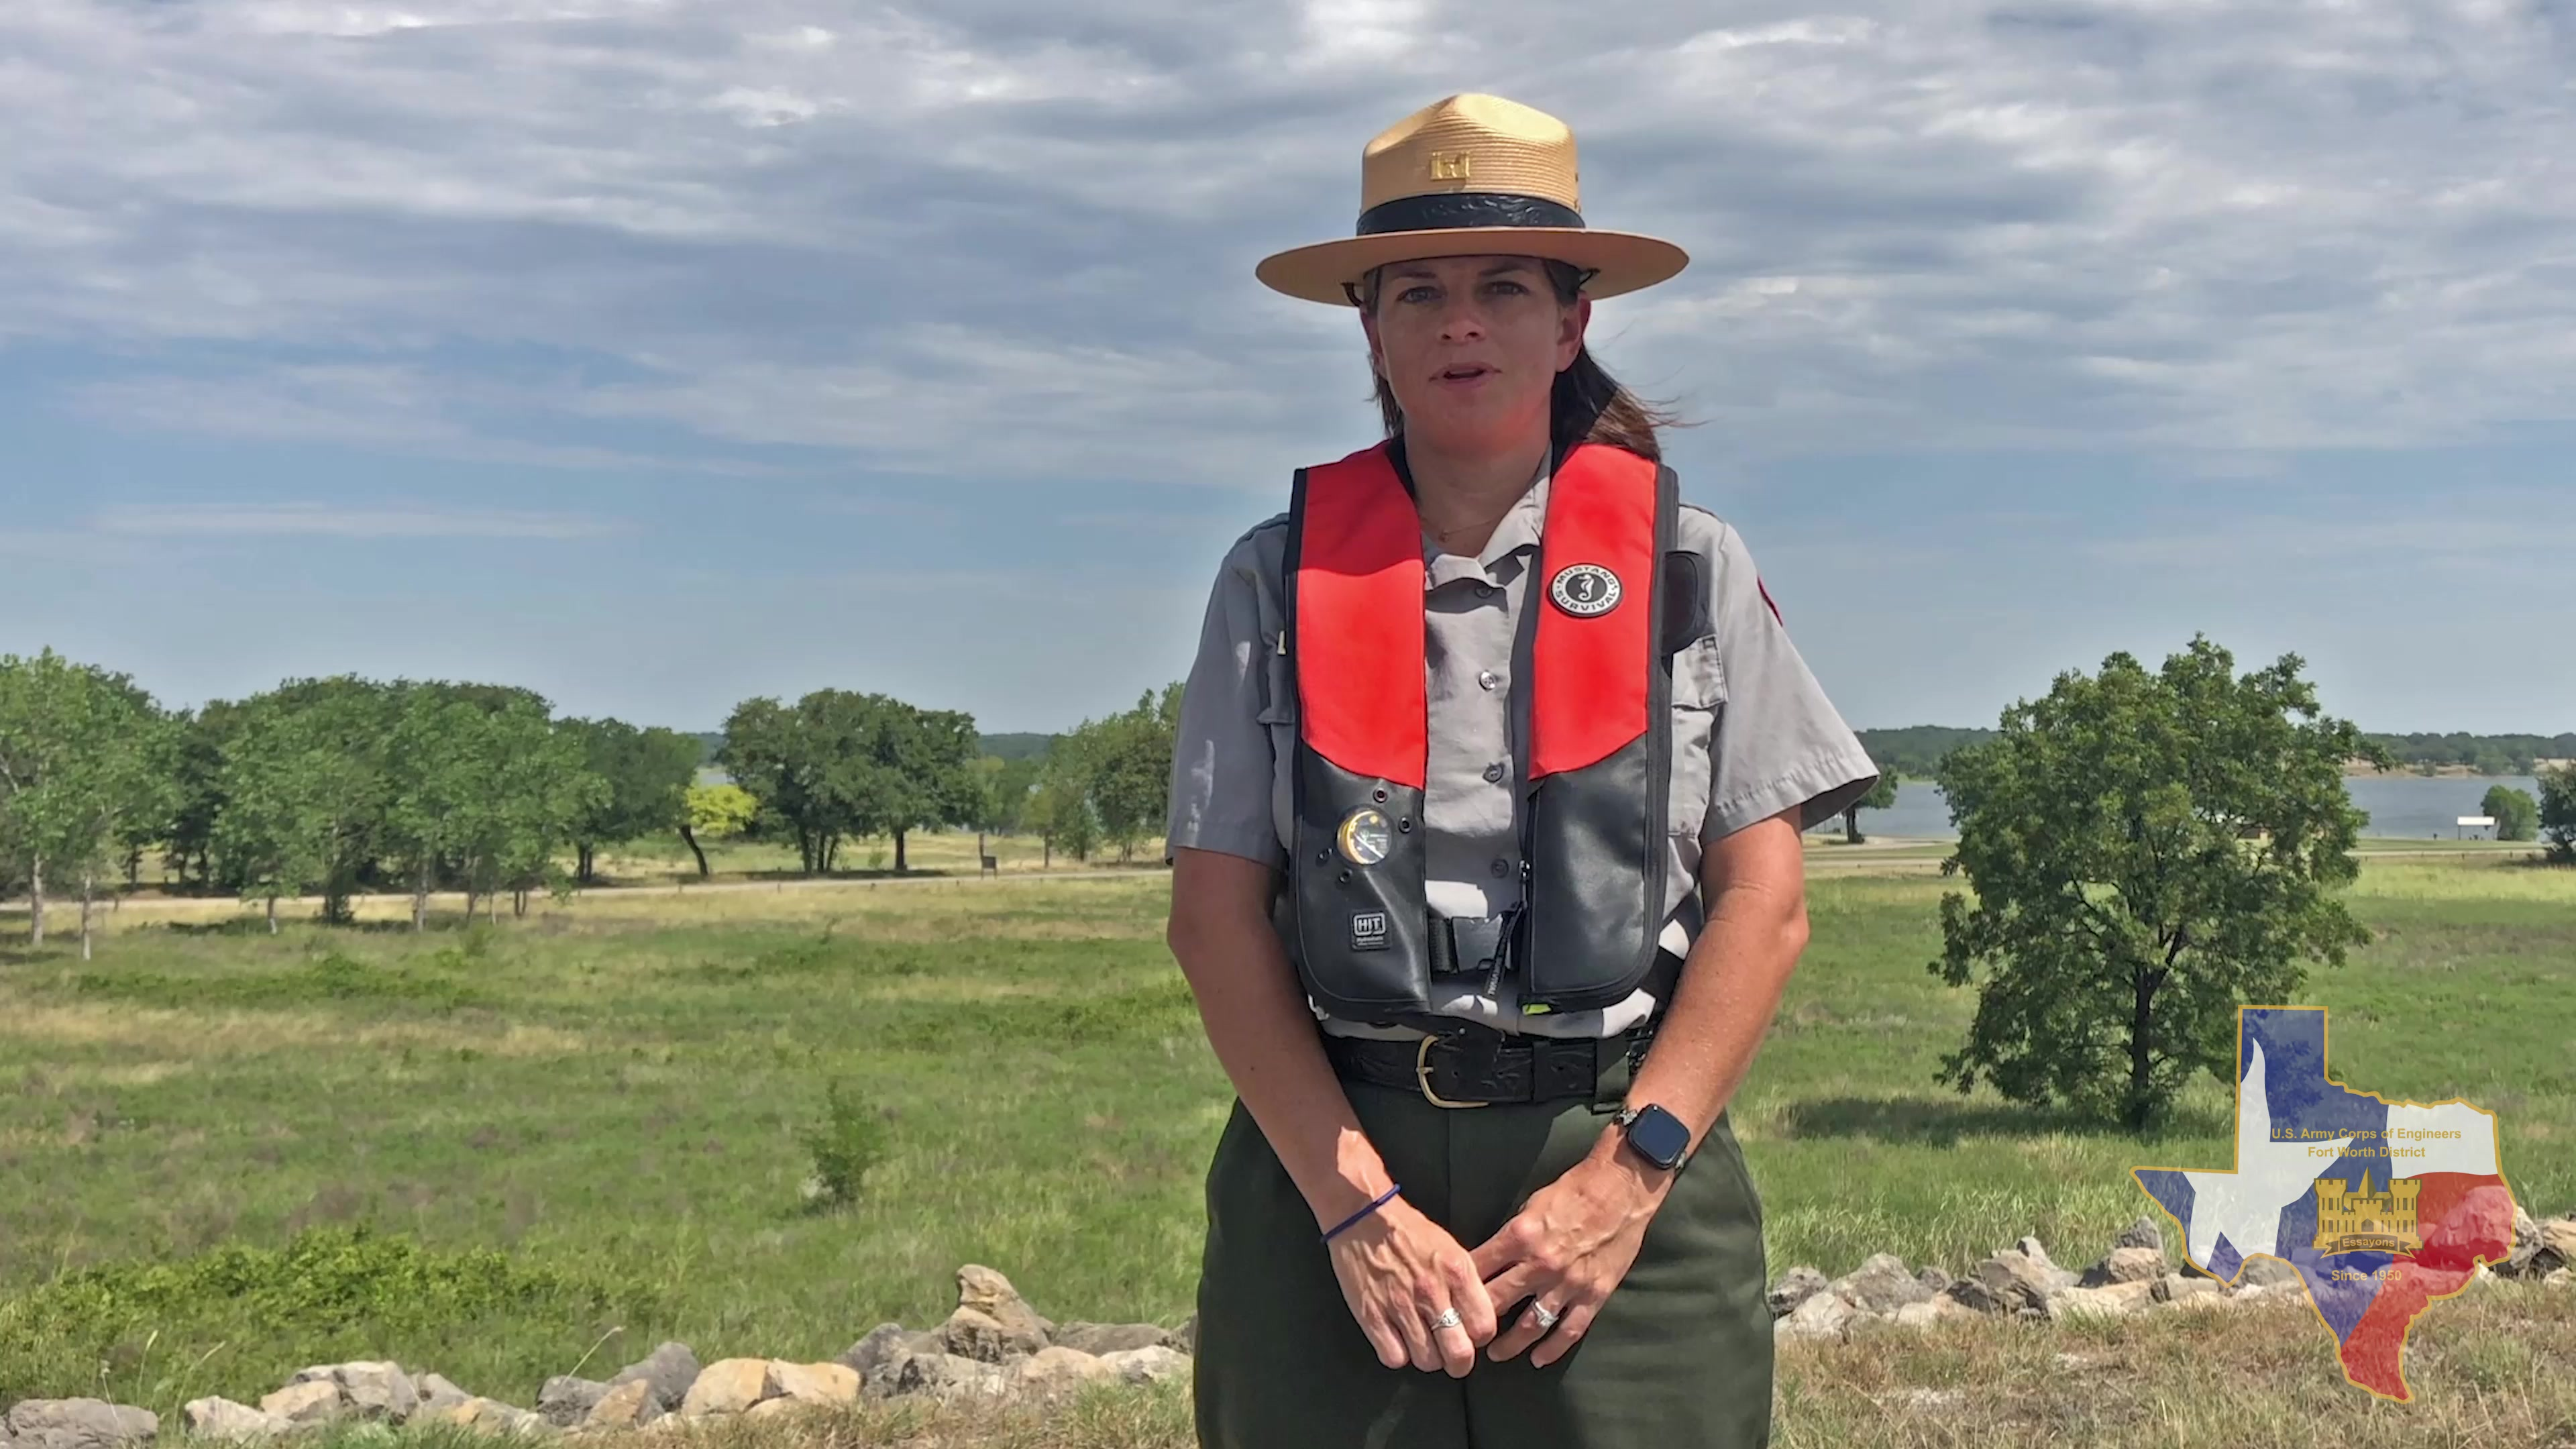 In this water safety video Ranger Stephanie Jones from USACEFortWorth's Proctor Lake talks about the dangers of mixing alcohol and boating.